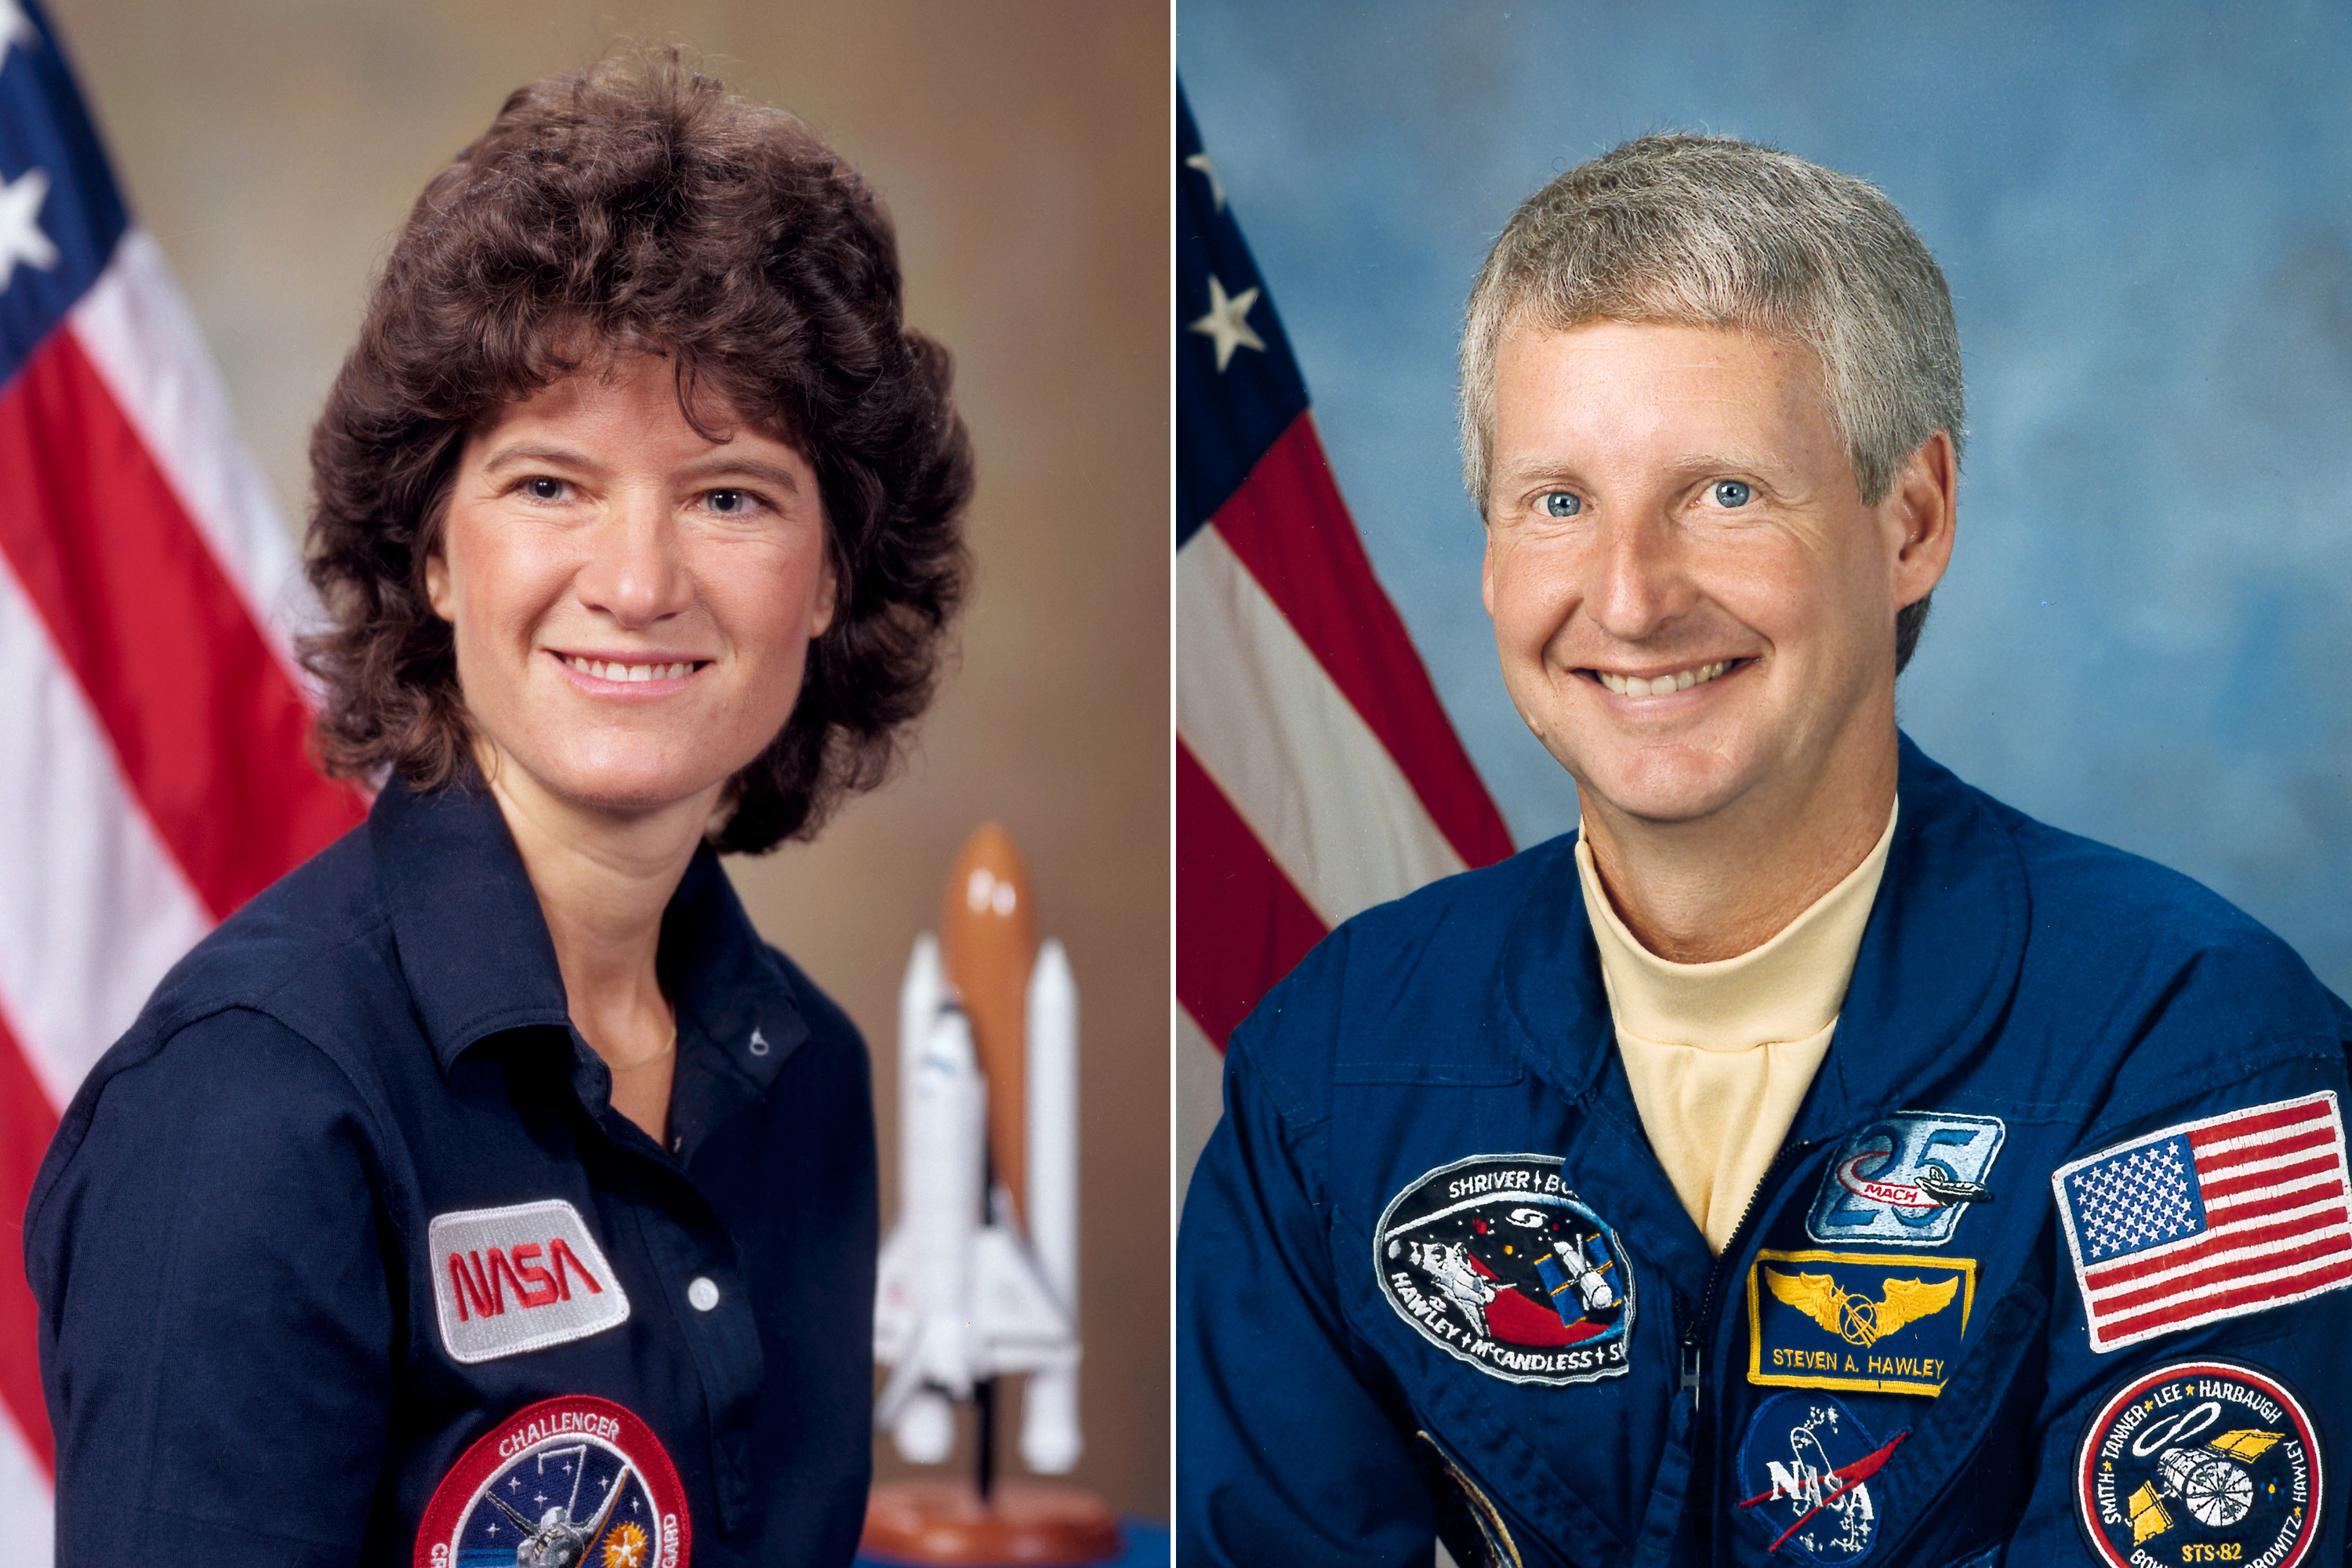 Sally Ride and Steven Hawley were married for five years from 1982 until 1987. Ride was the first American woman in space, flying on the shuttle Challenger in June, 1983.  Ride later spent 27 years with Tam O'Shaughnessy, a science writer and co-founder of the science education company Sally Ride Science.  Though they never married, they remained partners until Ride's passing in 2012.